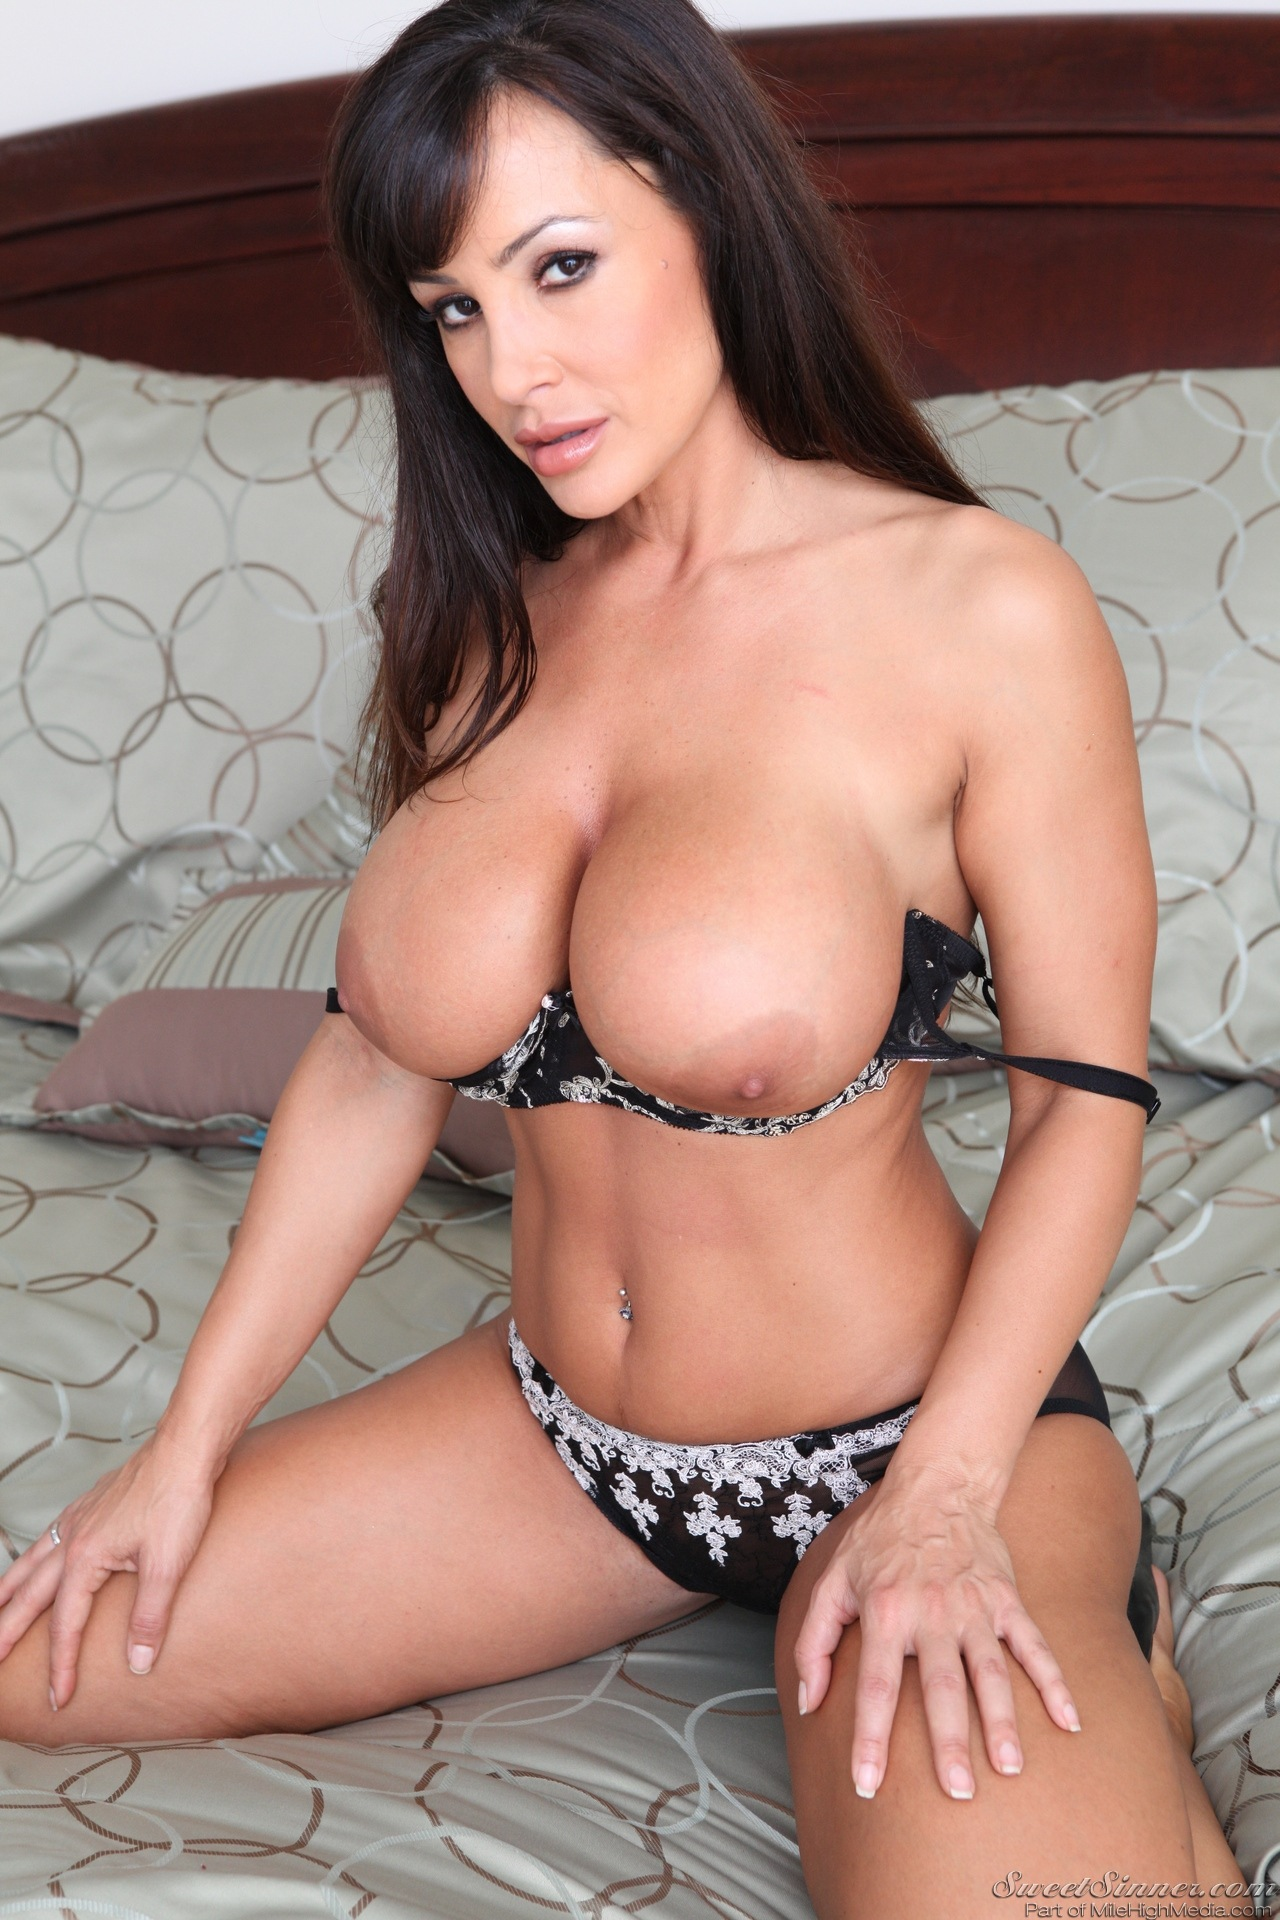 Lisa ann porn posing fantastic way!